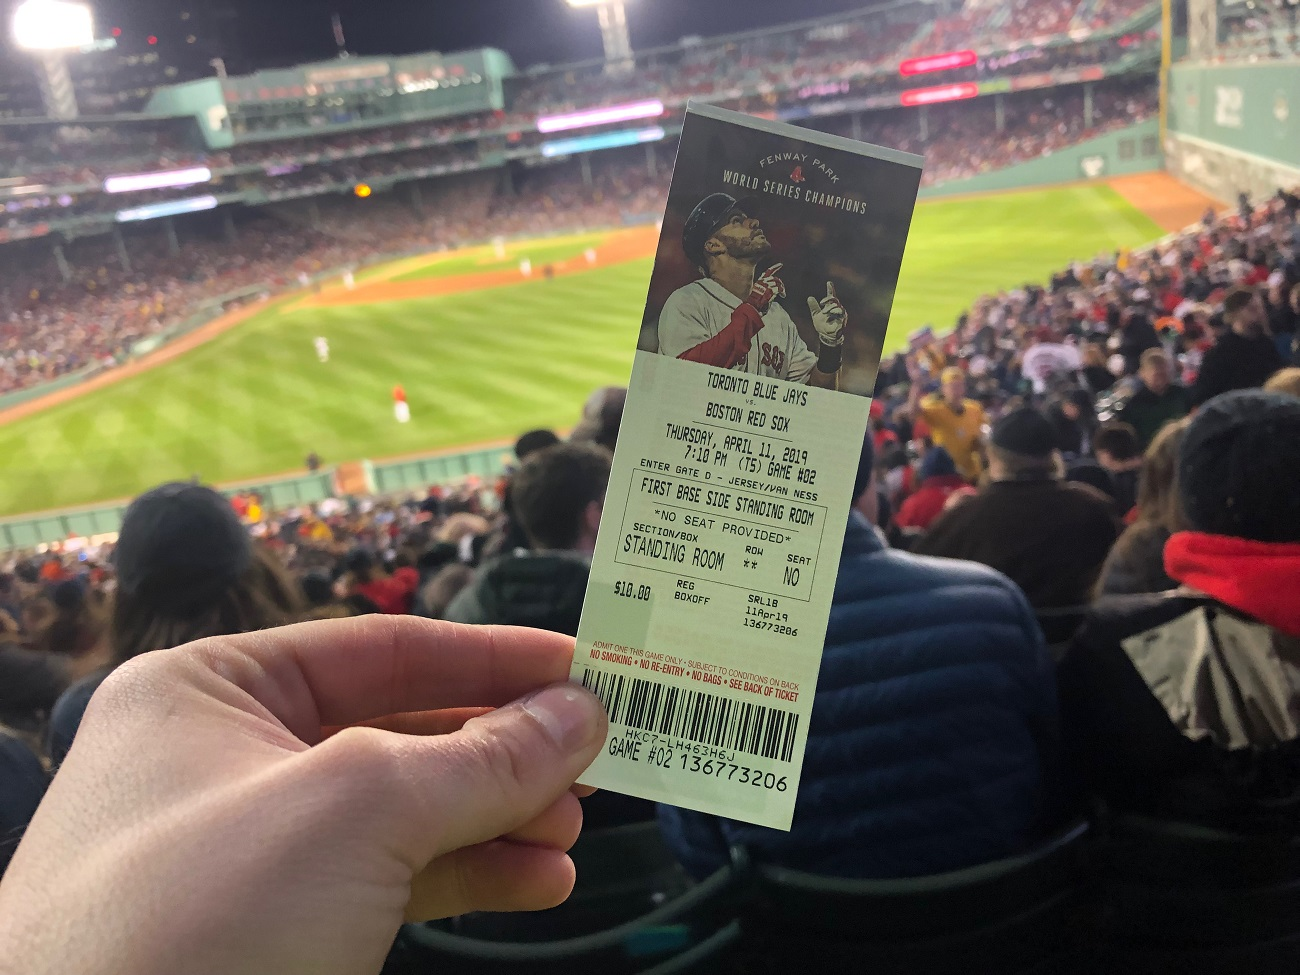 Standing Room Only Ticket at Fenway Park